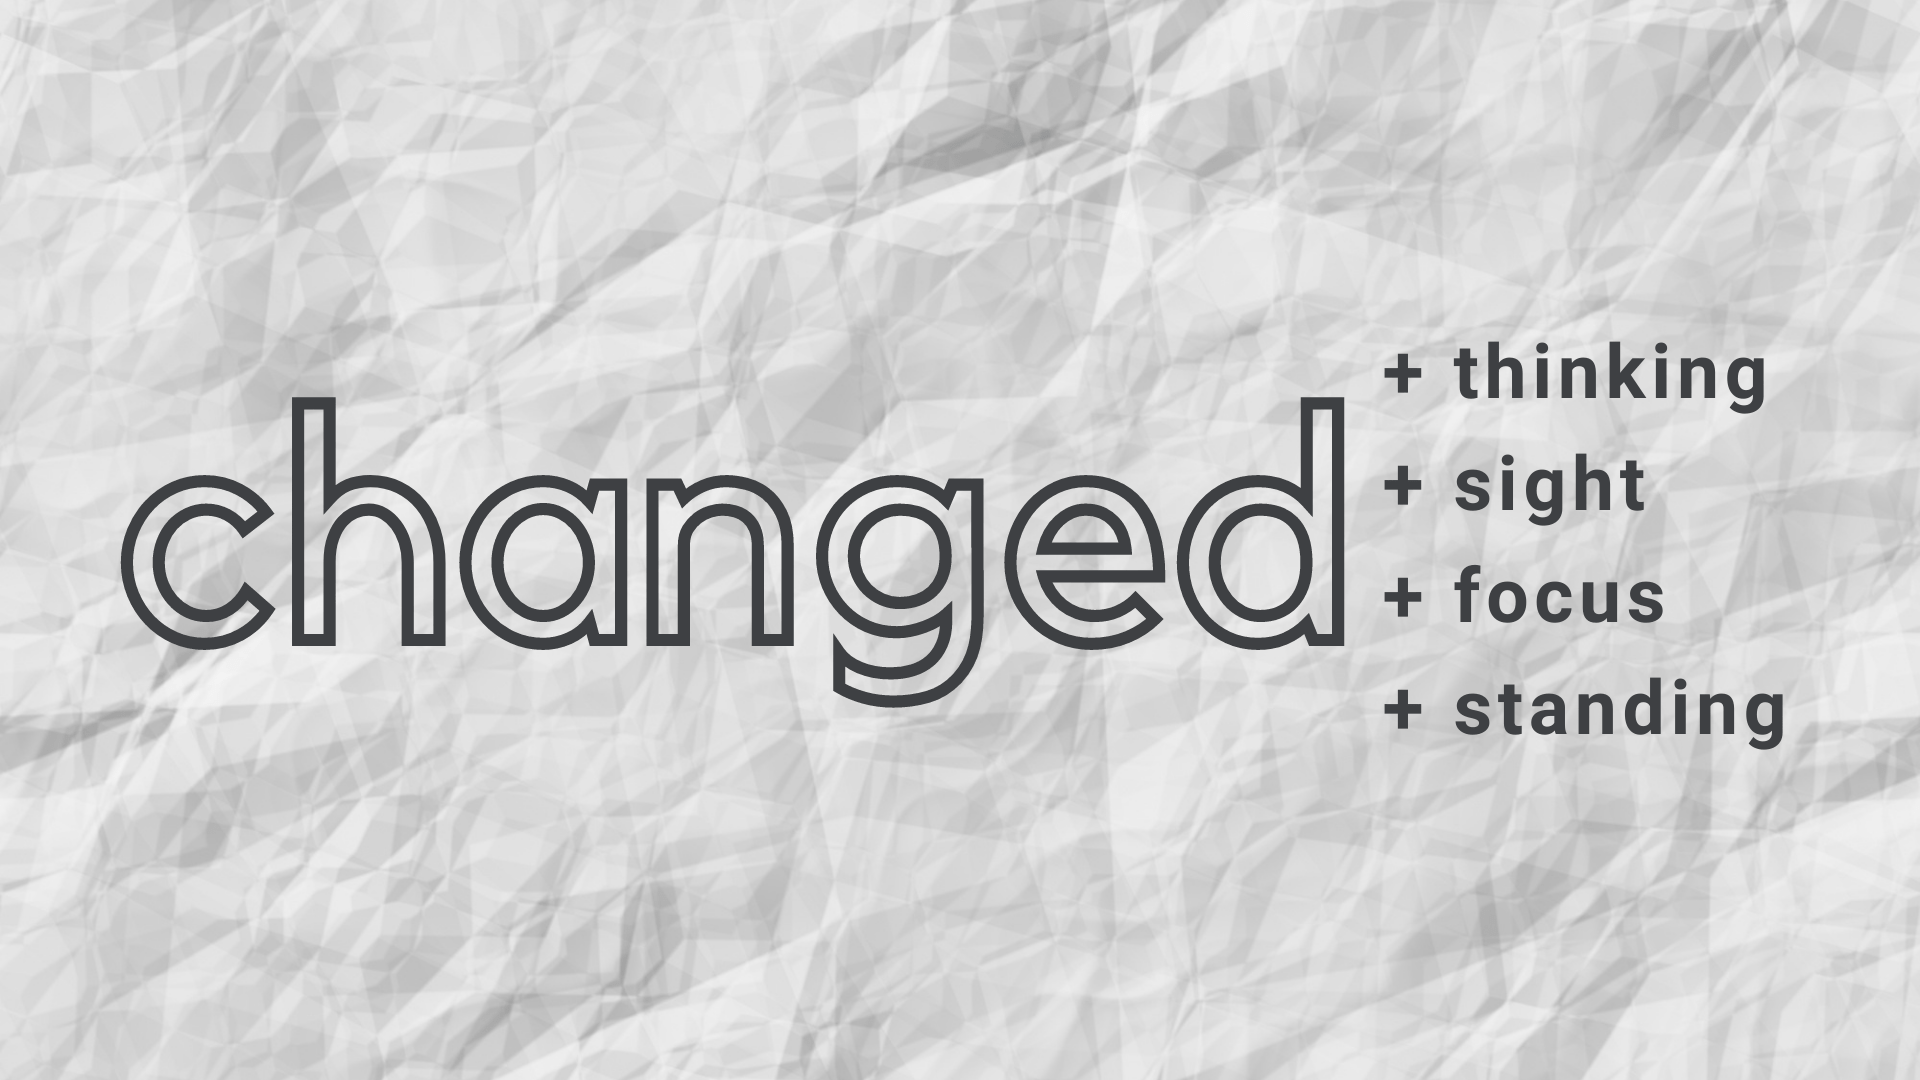 Changed 1